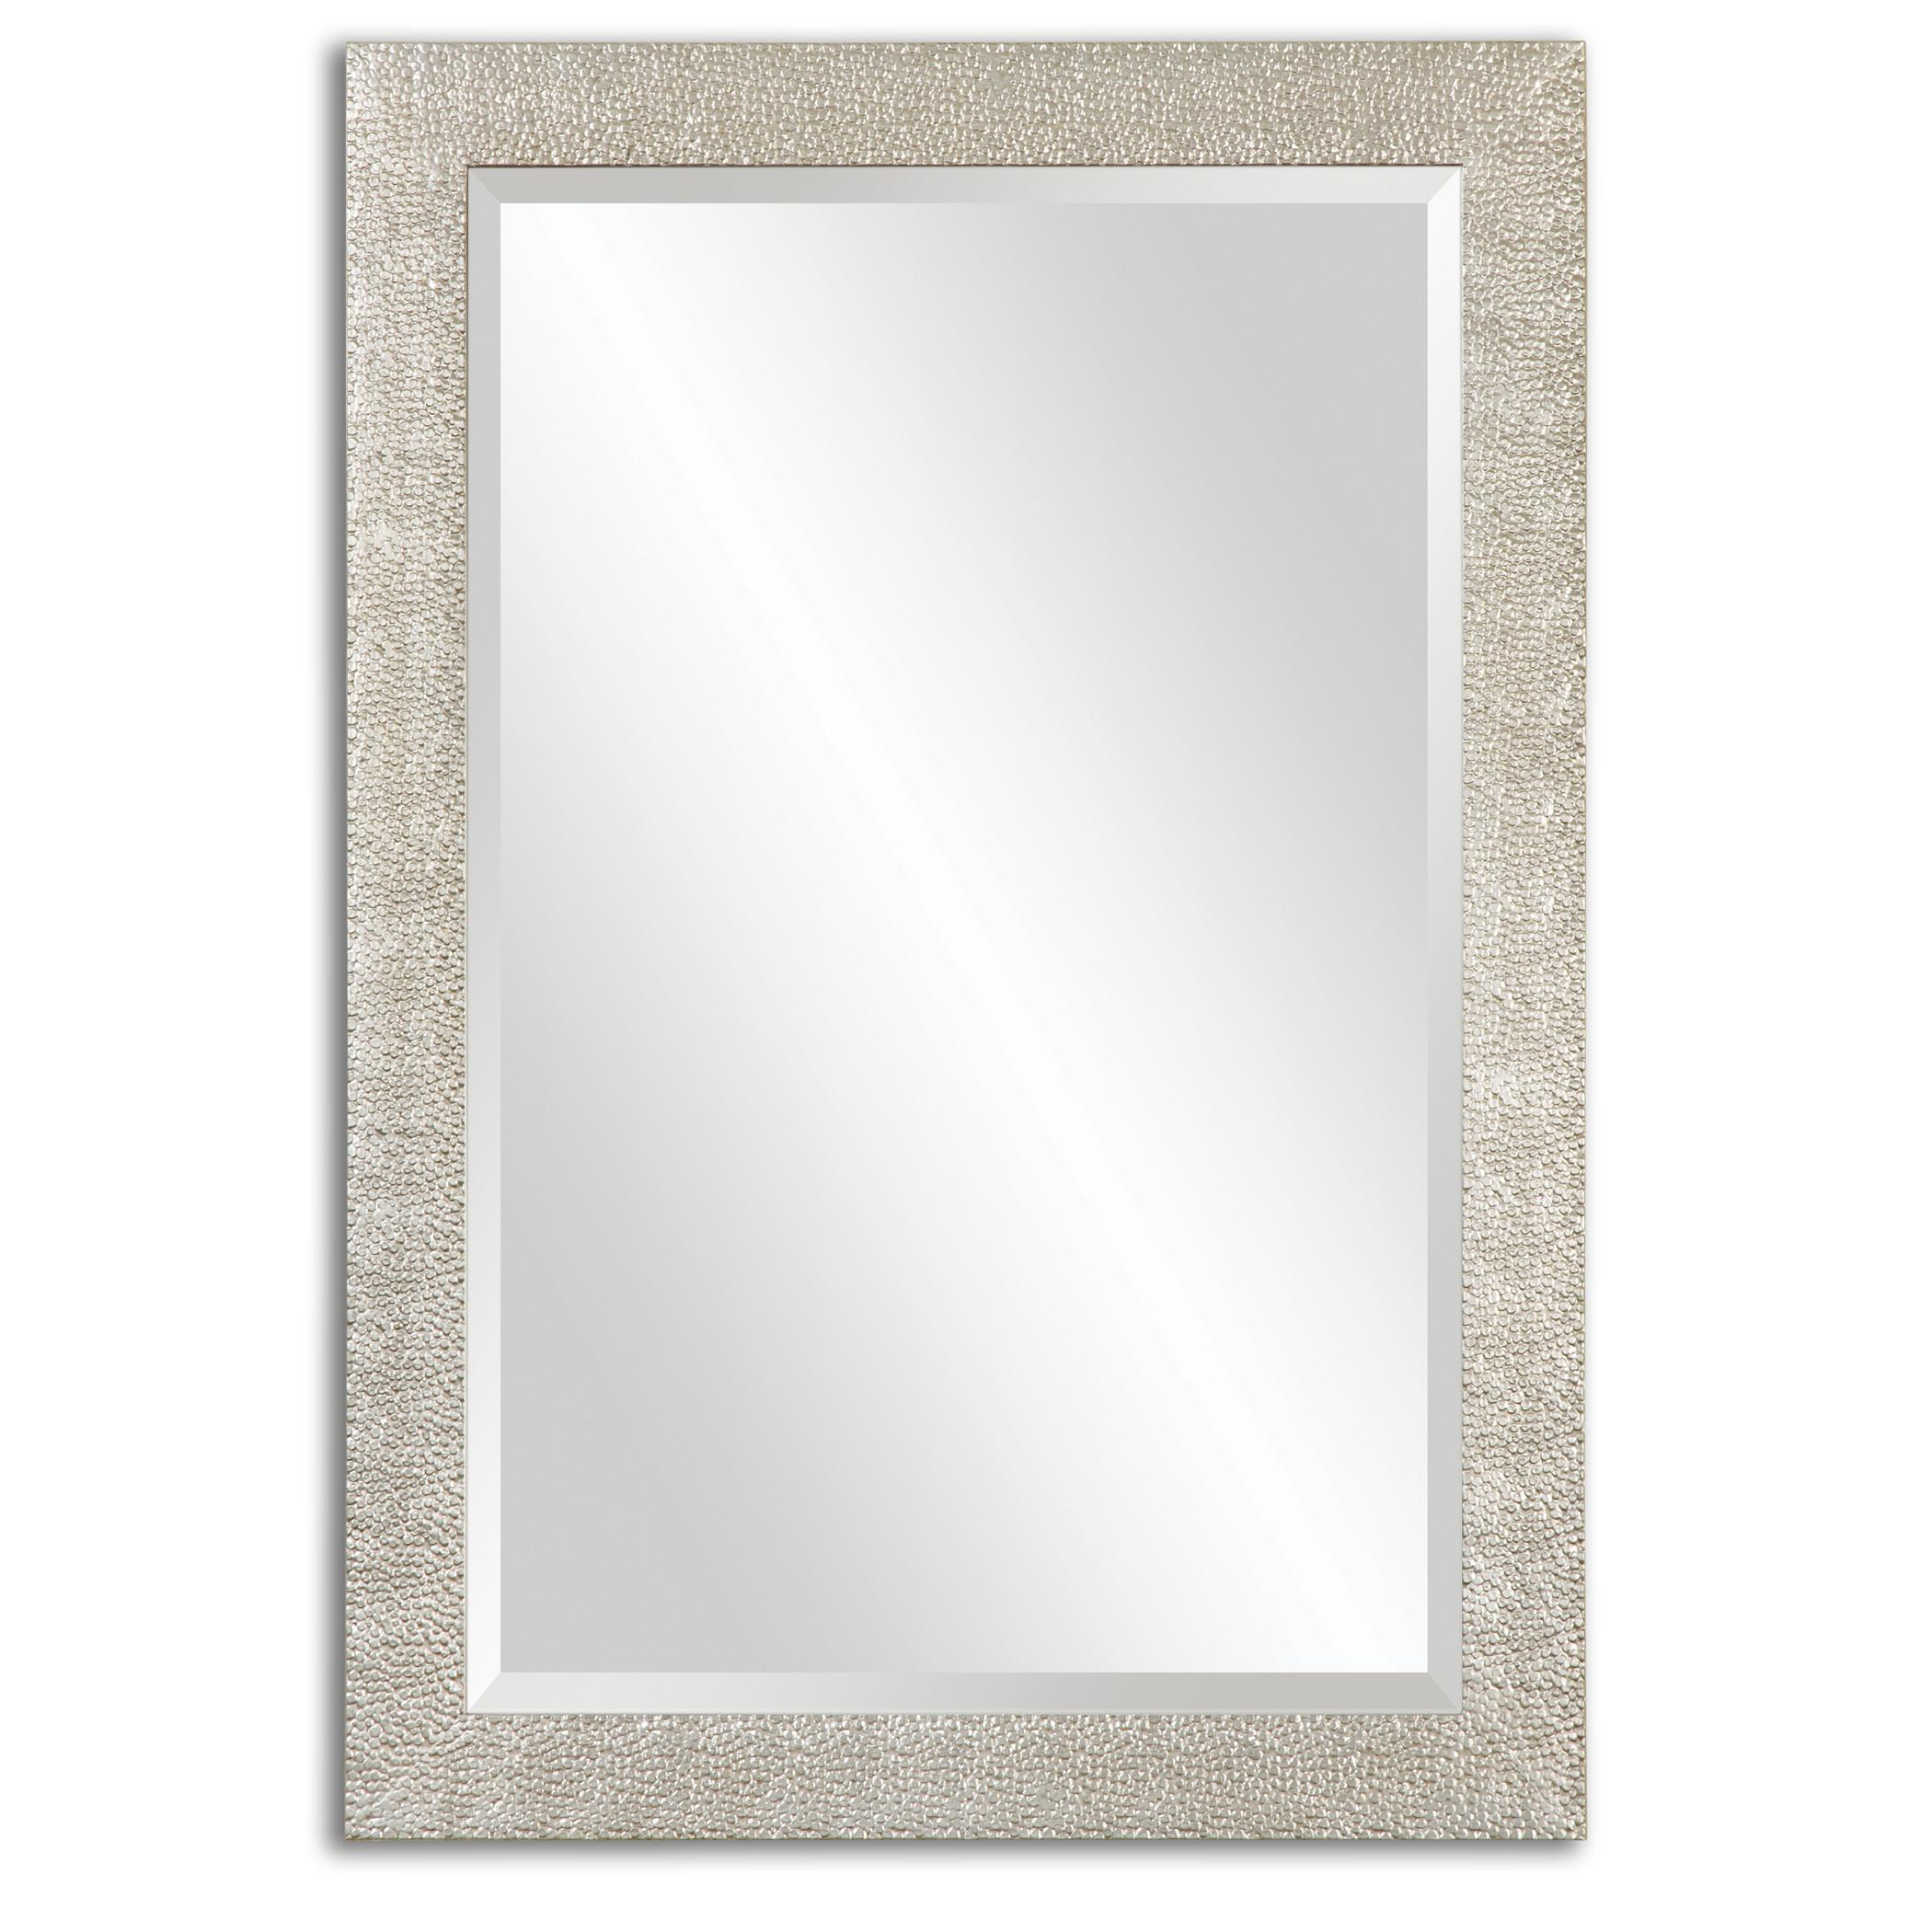 Uttermost Mirrors Porcius antiqued Silver Mirror - Item Number: 14495